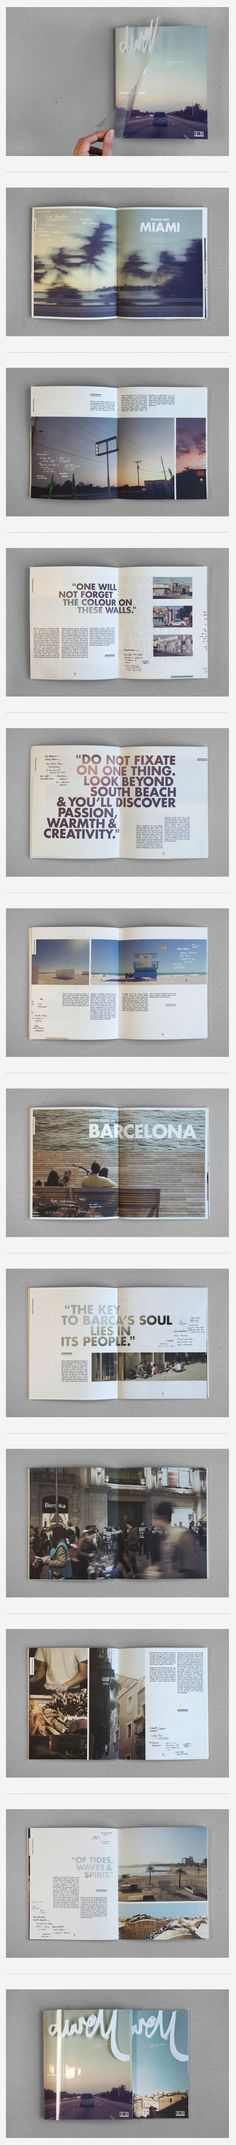 Dwell - Coastal Cities Revisited / magazine visual identity and layout pitch by Sidney Lim YX #print #editorial